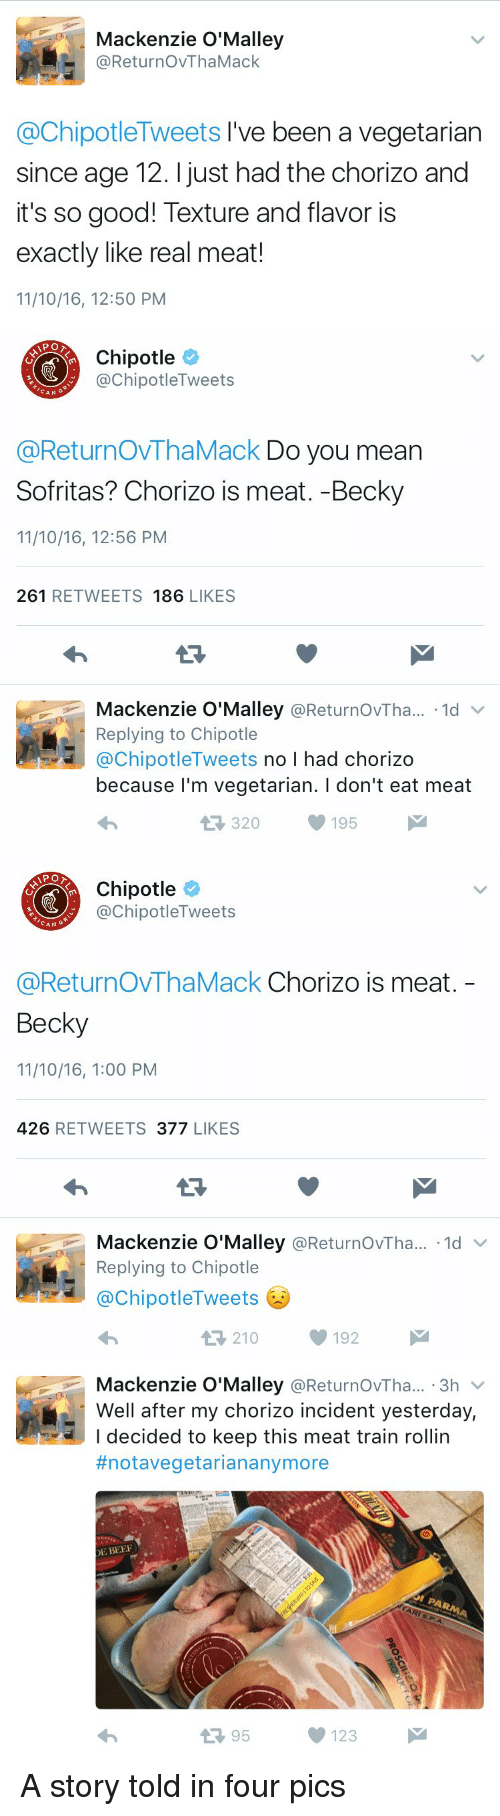 mackenzie: Mackenzie O'Malley  @ReturnovThaMack  @ChipotleTweets I've been a vegetarian  since age 12. just had the chorizo and  it's so good! Texture and flavor is  exactly like real meat!  11/10/16, 12:50 PM   Chipotle  @Chi Tweets  nipotle CAN  @ReturnovThaMack Do you mean  Sofritas? Chorizo is meat. -Becky  11/10/16, 12:56 PM  261  RETWEETS 186  LIKES  Mackenzie O'Malley  @ReturnovTha... 1d v  Replying to Chipotle  @ChipotleTweets no I had chorizo  because I'm vegetarian. l don't eat meat  320 195  M   Chipotle  @ChipotleTweets  CAN  G  @ReturnovThaMack Chorizo is meat  Becky  11/10/16, 1:00 PM  426  RETWEETS  377  LIKES  Mackenzie O'Malley  @ReturnovTha... 1d  v  Replying to Chipotle  @ChipotleTweets  210 192   Mackenzie O'Malley  @ReturnovTha... 3h  v  Well after my chorizo incident yesterday,  I decided to keep this meat train rollin  #notavegetarian anymore  DE BEEF  t 95  123 A story told in four pics